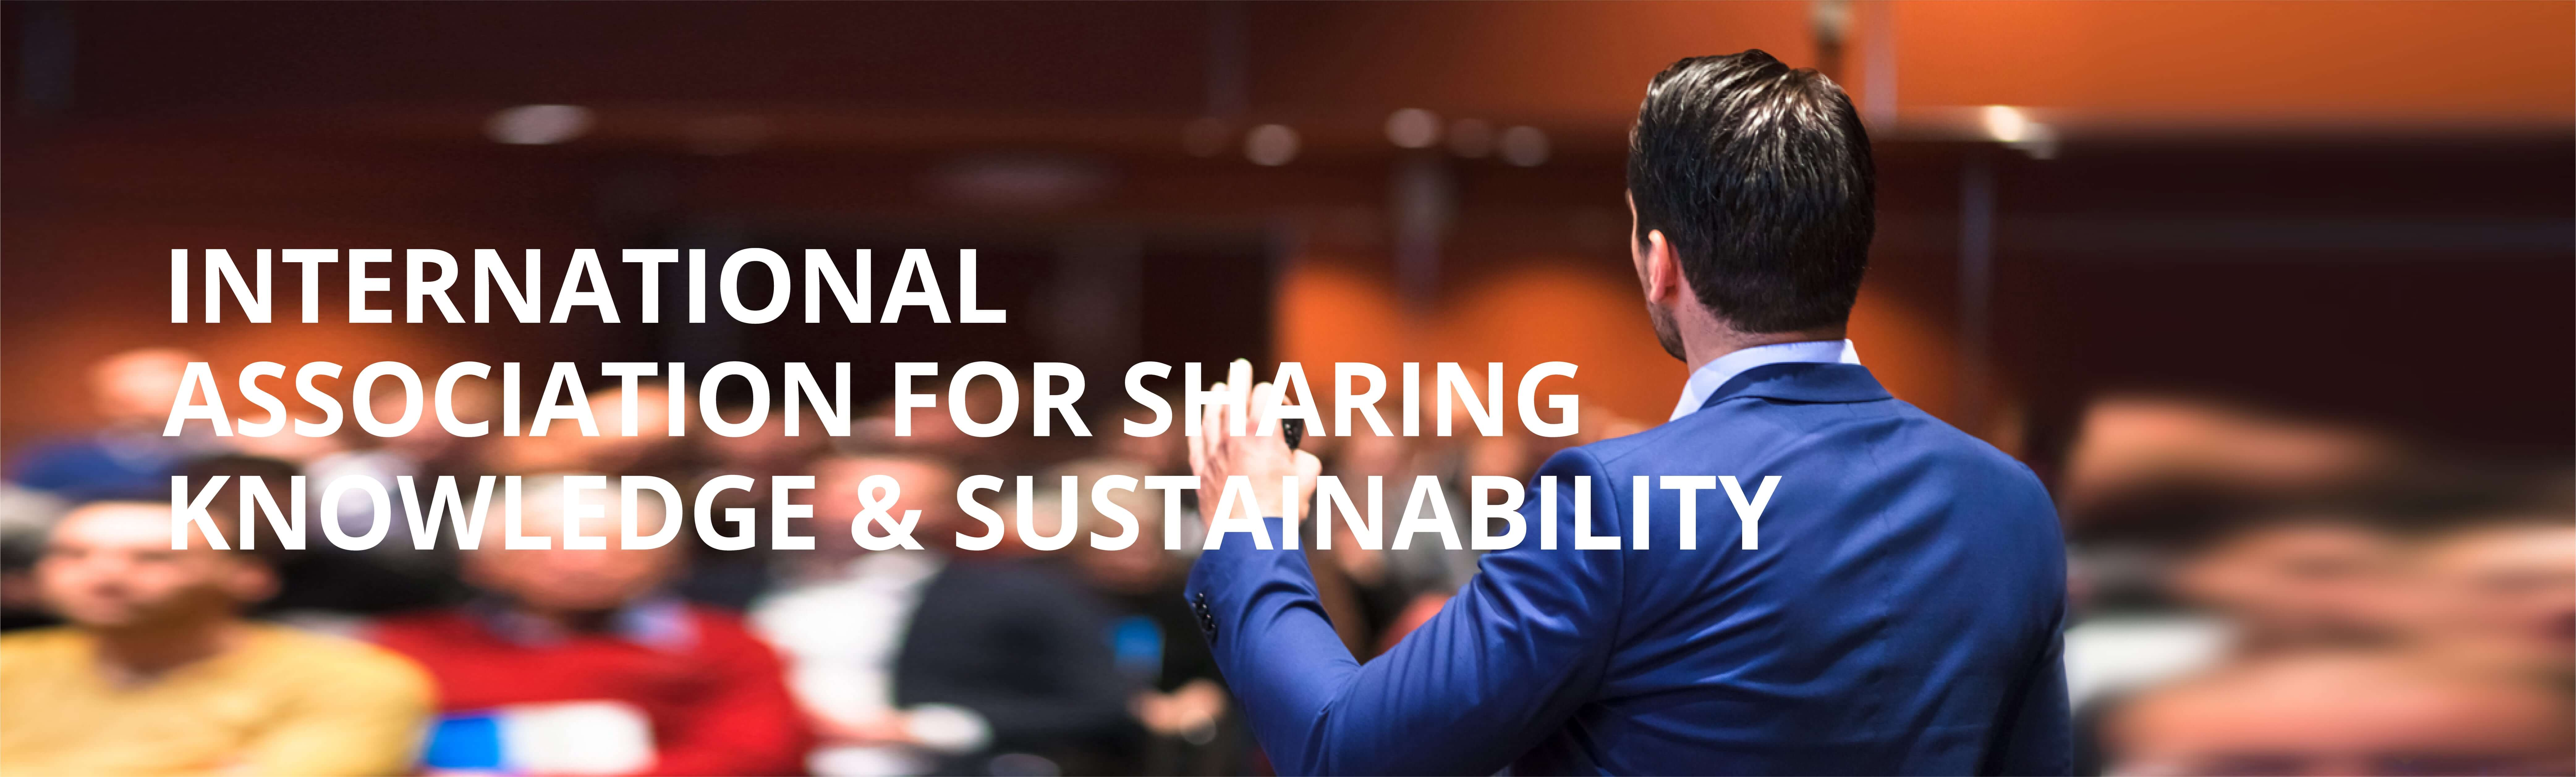 International Association for Sharing Knowledge and Sustainability